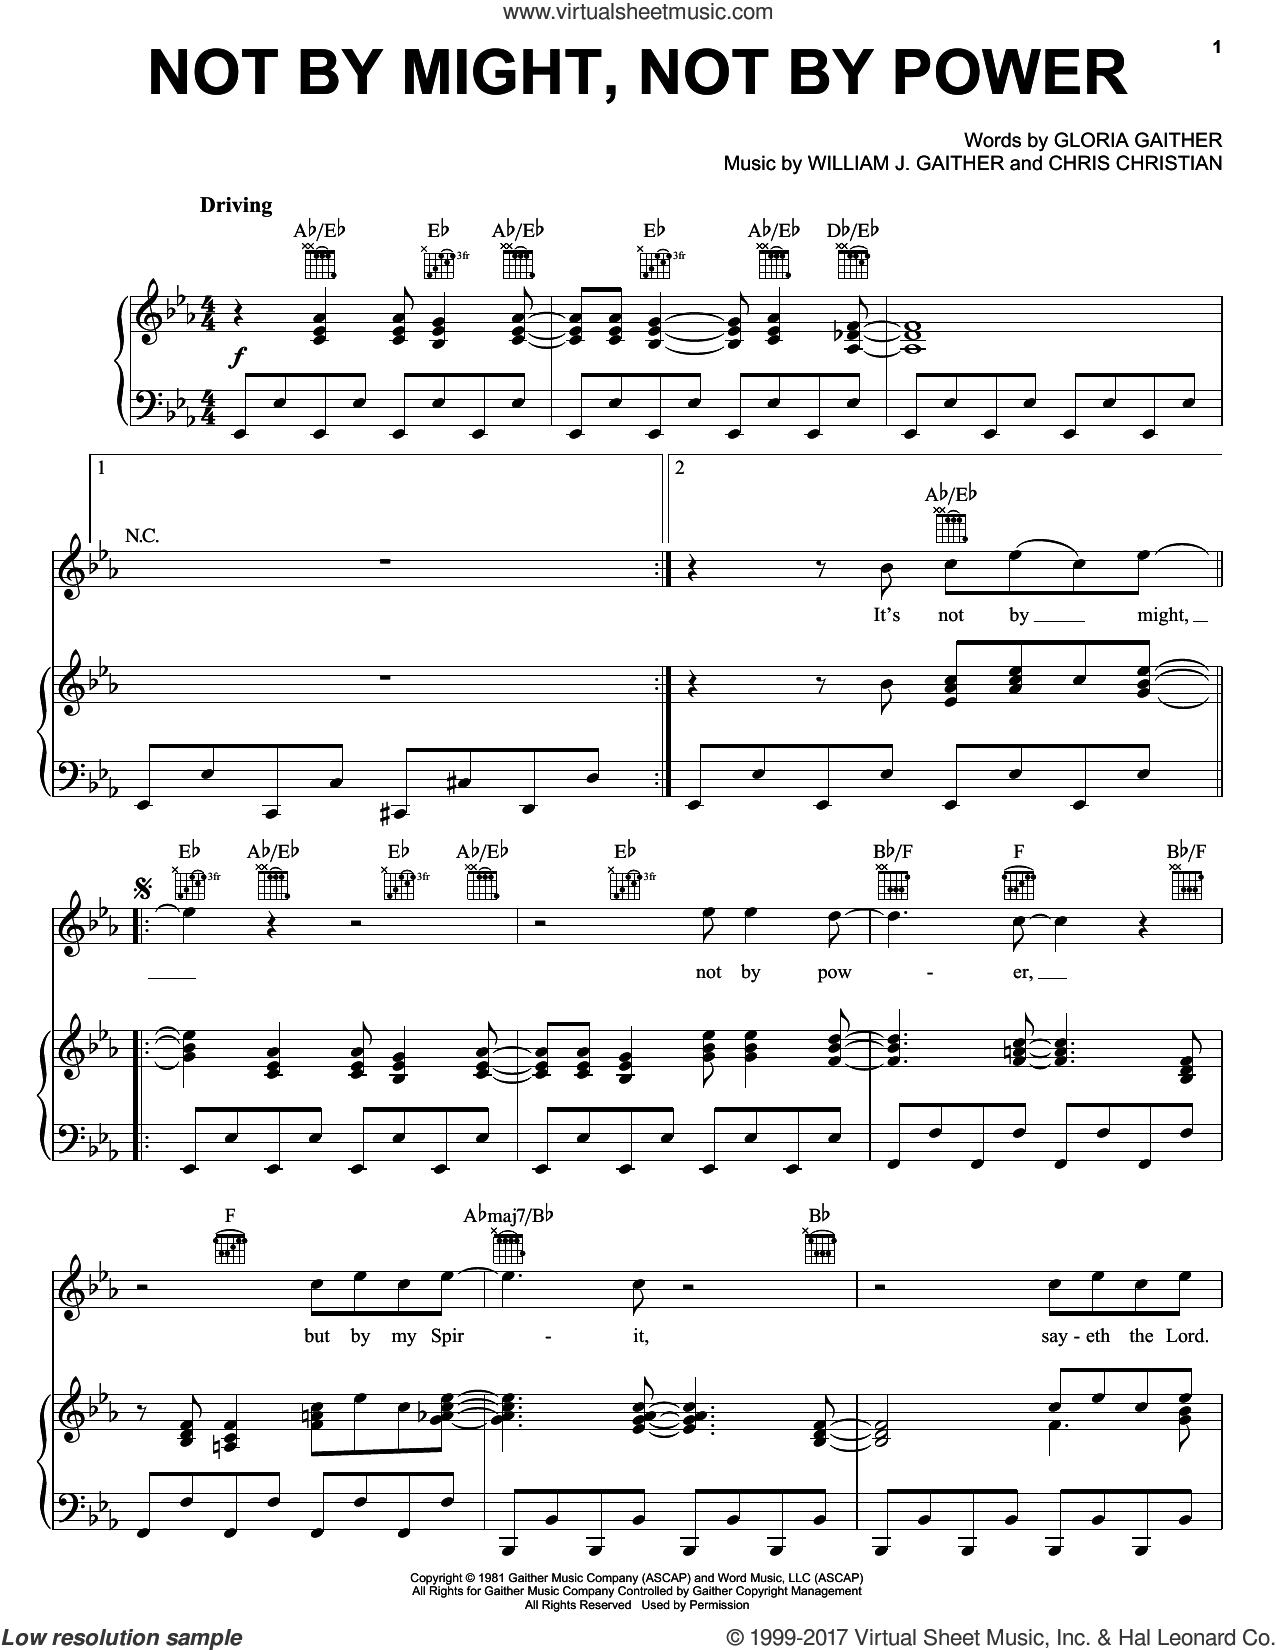 Not By Might, Not By Power sheet music for voice, piano or guitar by Bill & Gloria Gaither, Gloria Gaither and William J. Gaither, intermediate voice, piano or guitar. Score Image Preview.